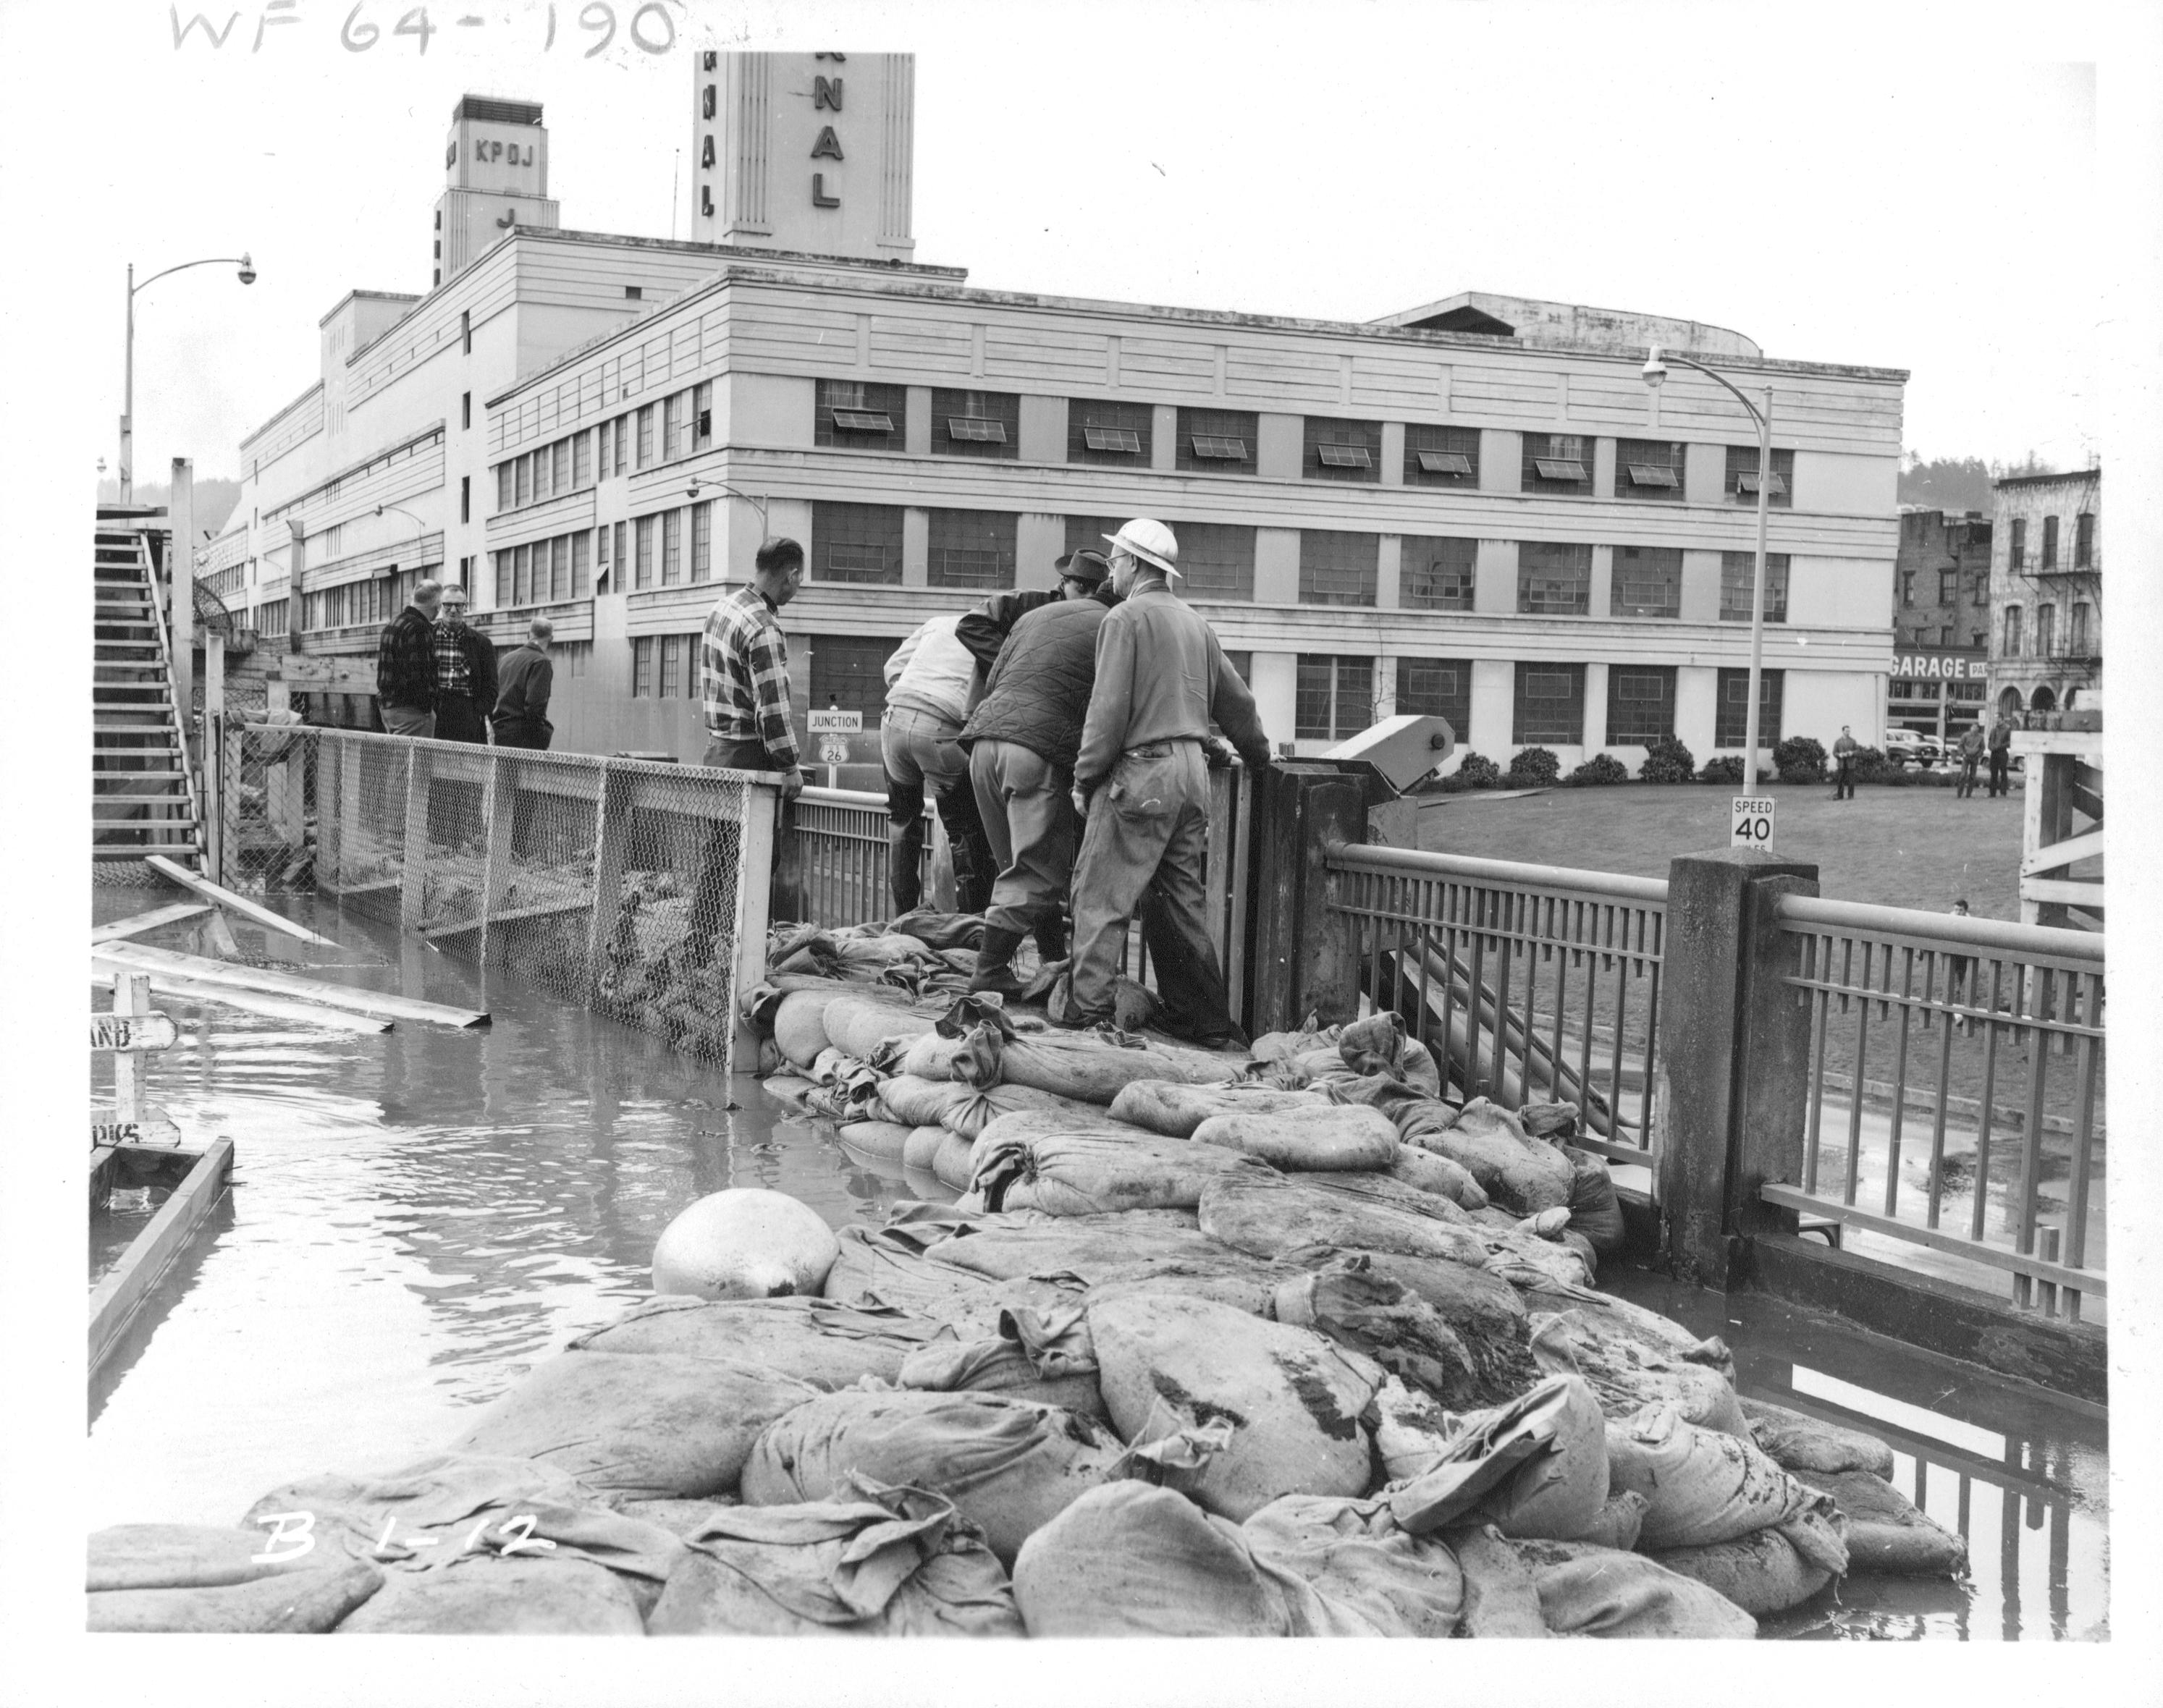 People are standing on a bridge looking down over the edge. There is flood water and sand bags on the bridge behind them. The image is in black and white, and it's from the Christmas Flood of 1996.